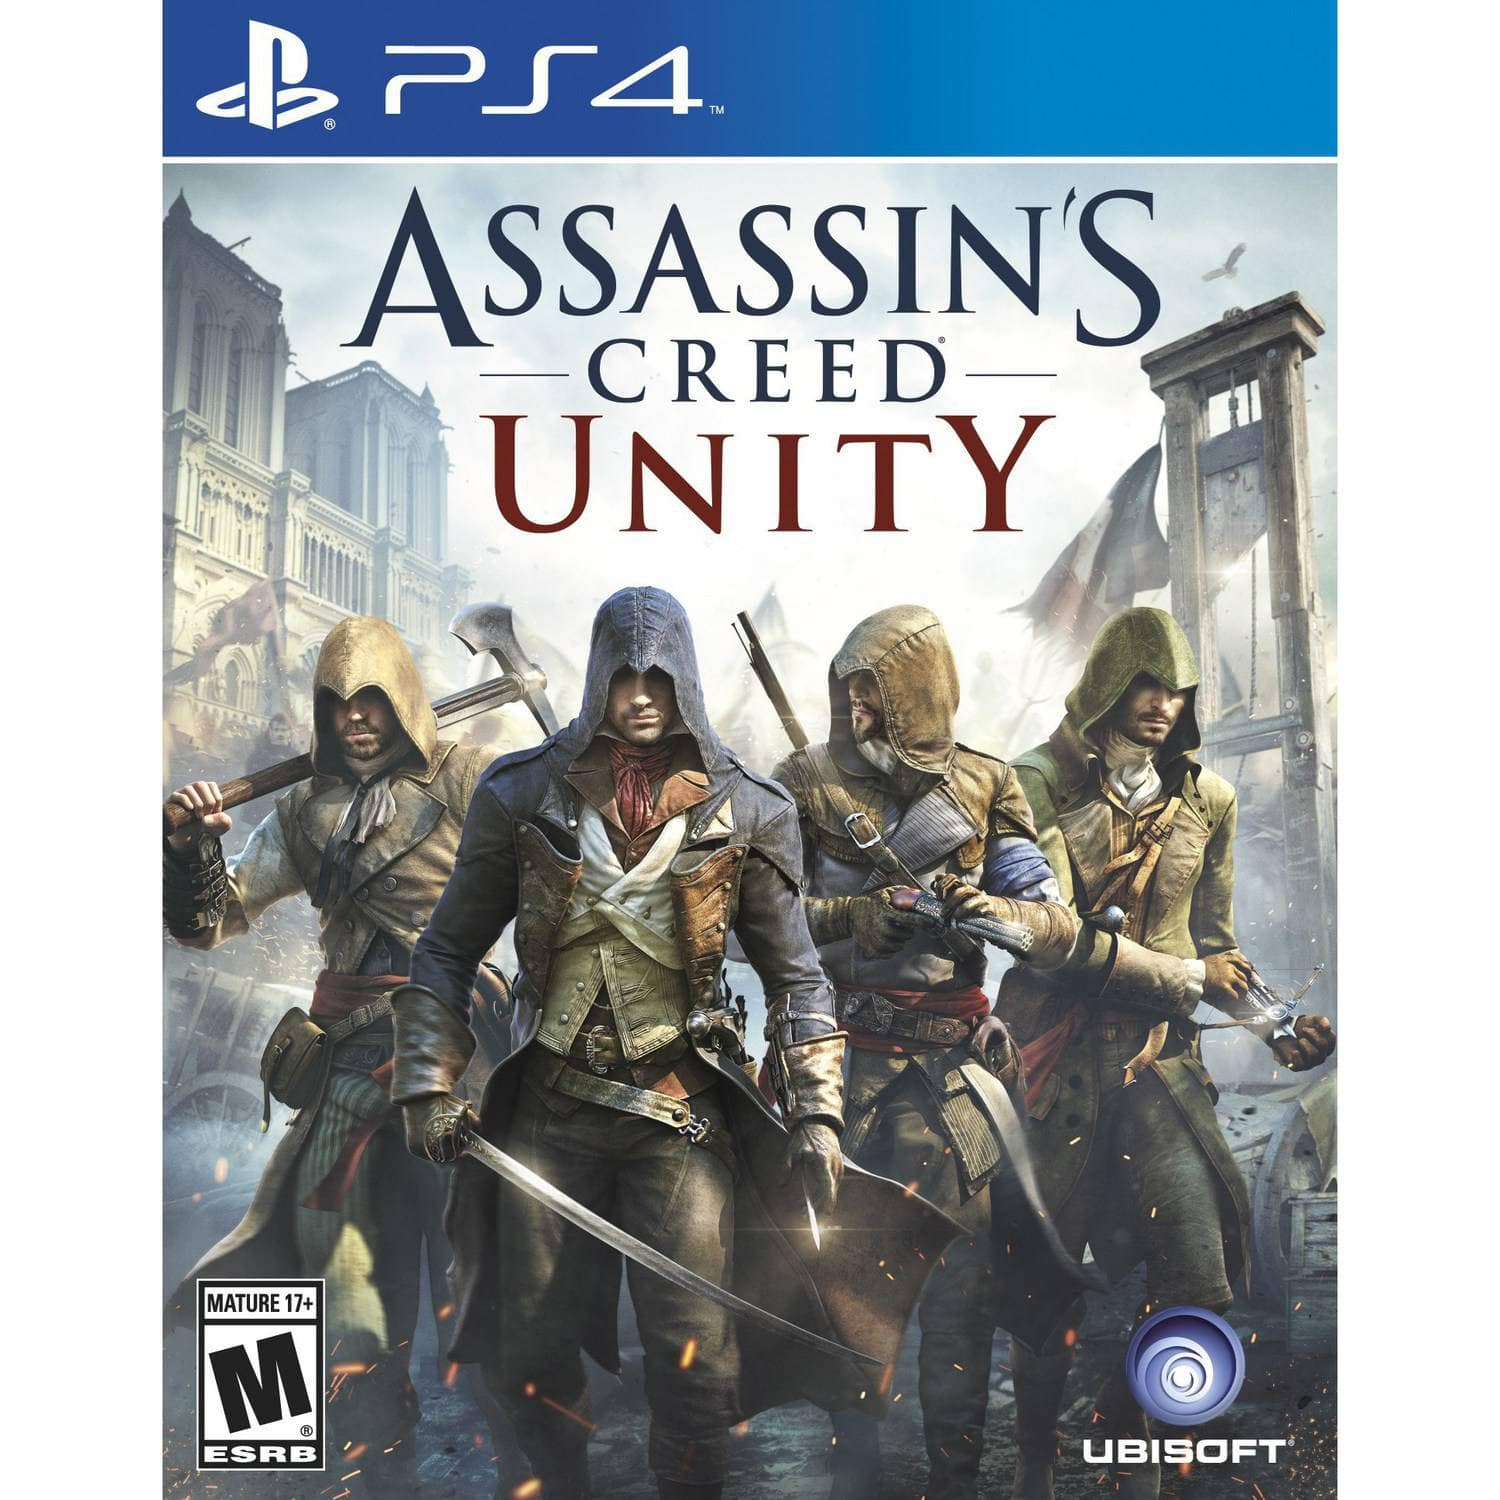 Pre-Owned Games: Assassin's Creed: Rogue (360) or Unity (PS4)  $4.90 & More + Free Store Pickup